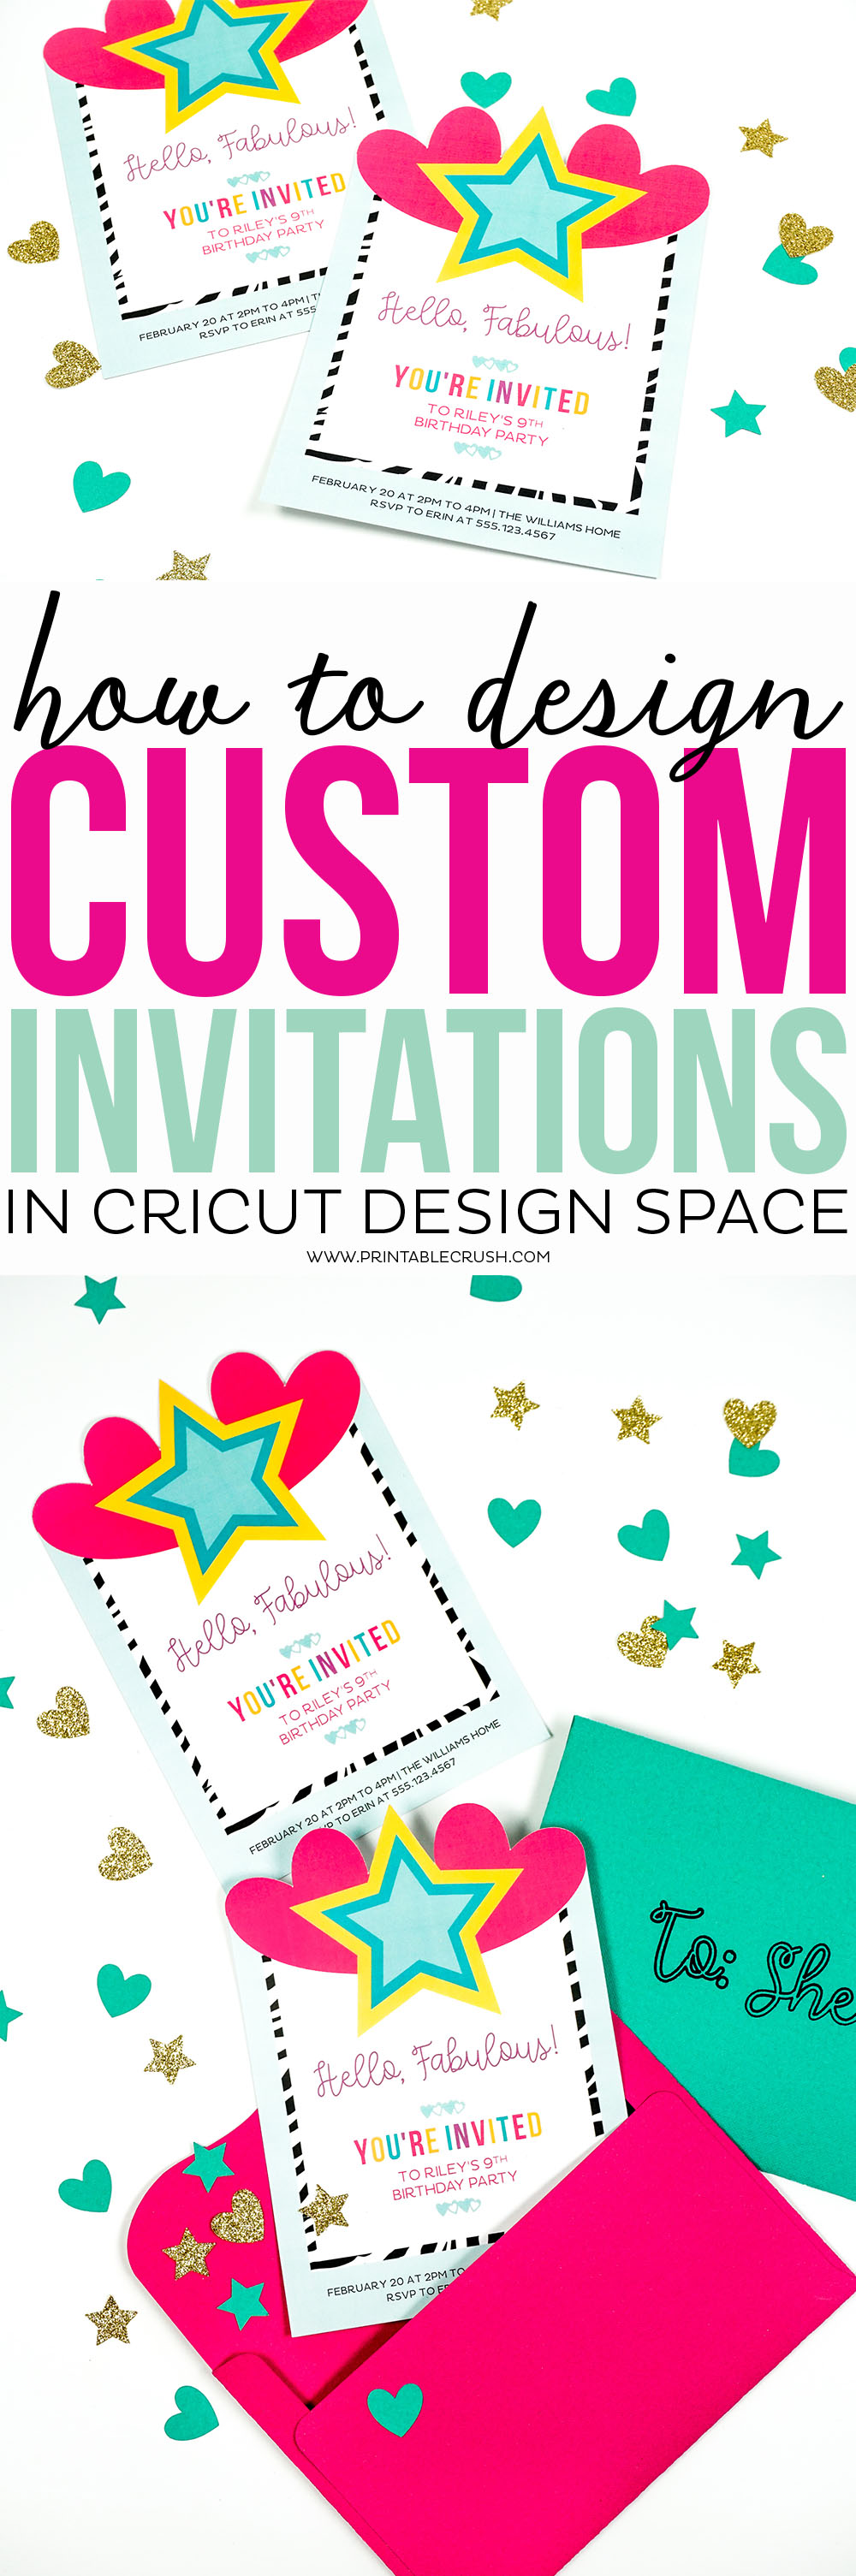 Invitation design long collage with bright invitations and envelopes